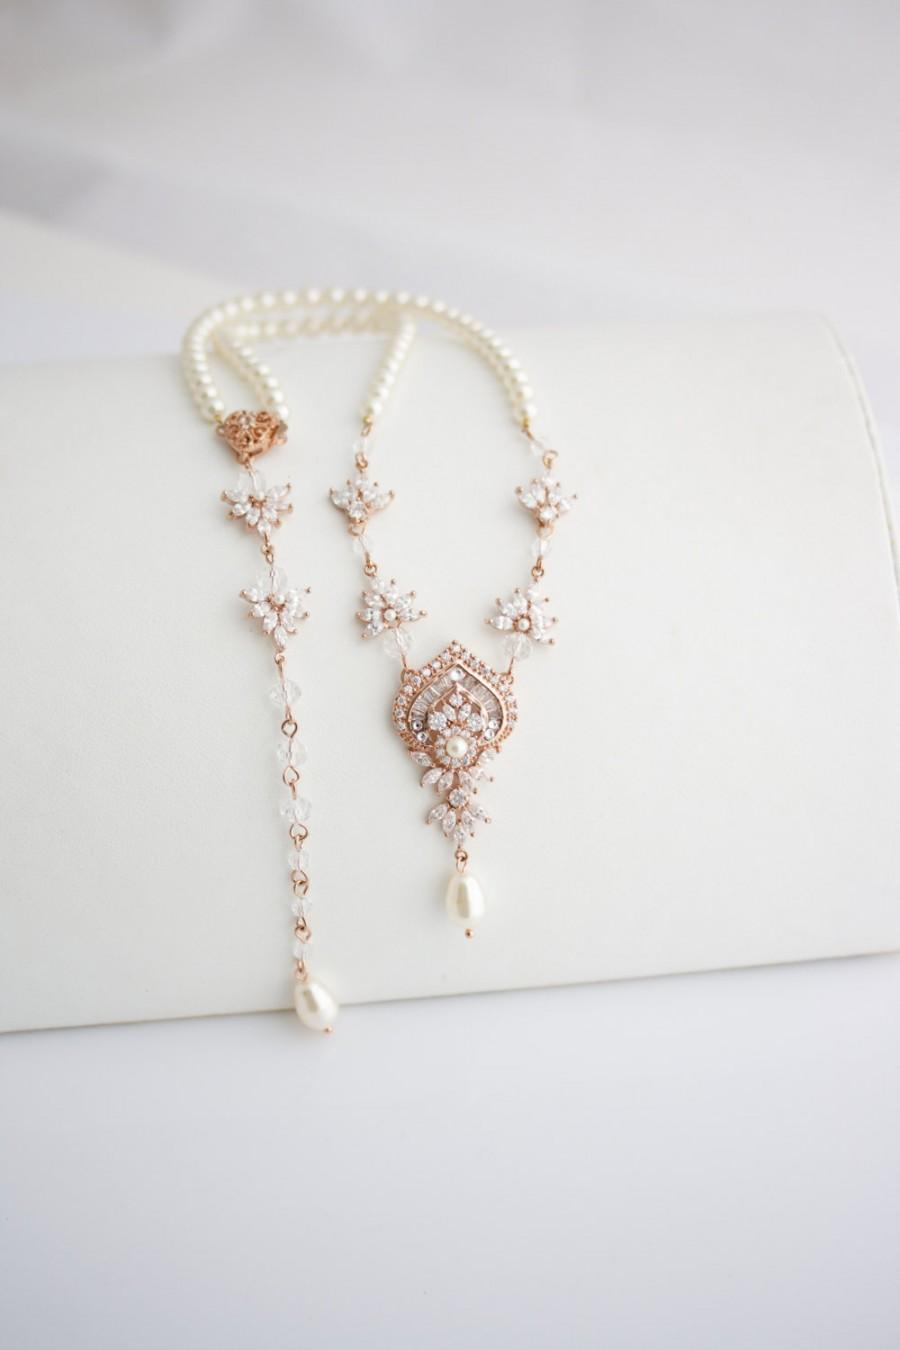 8c79beb8f Wedding Necklace Bridal Jewelry Rose Gold Backdrop Necklace Rose Gold  Jewelry Wedding Jewelry EVIE Back Drop Necklace